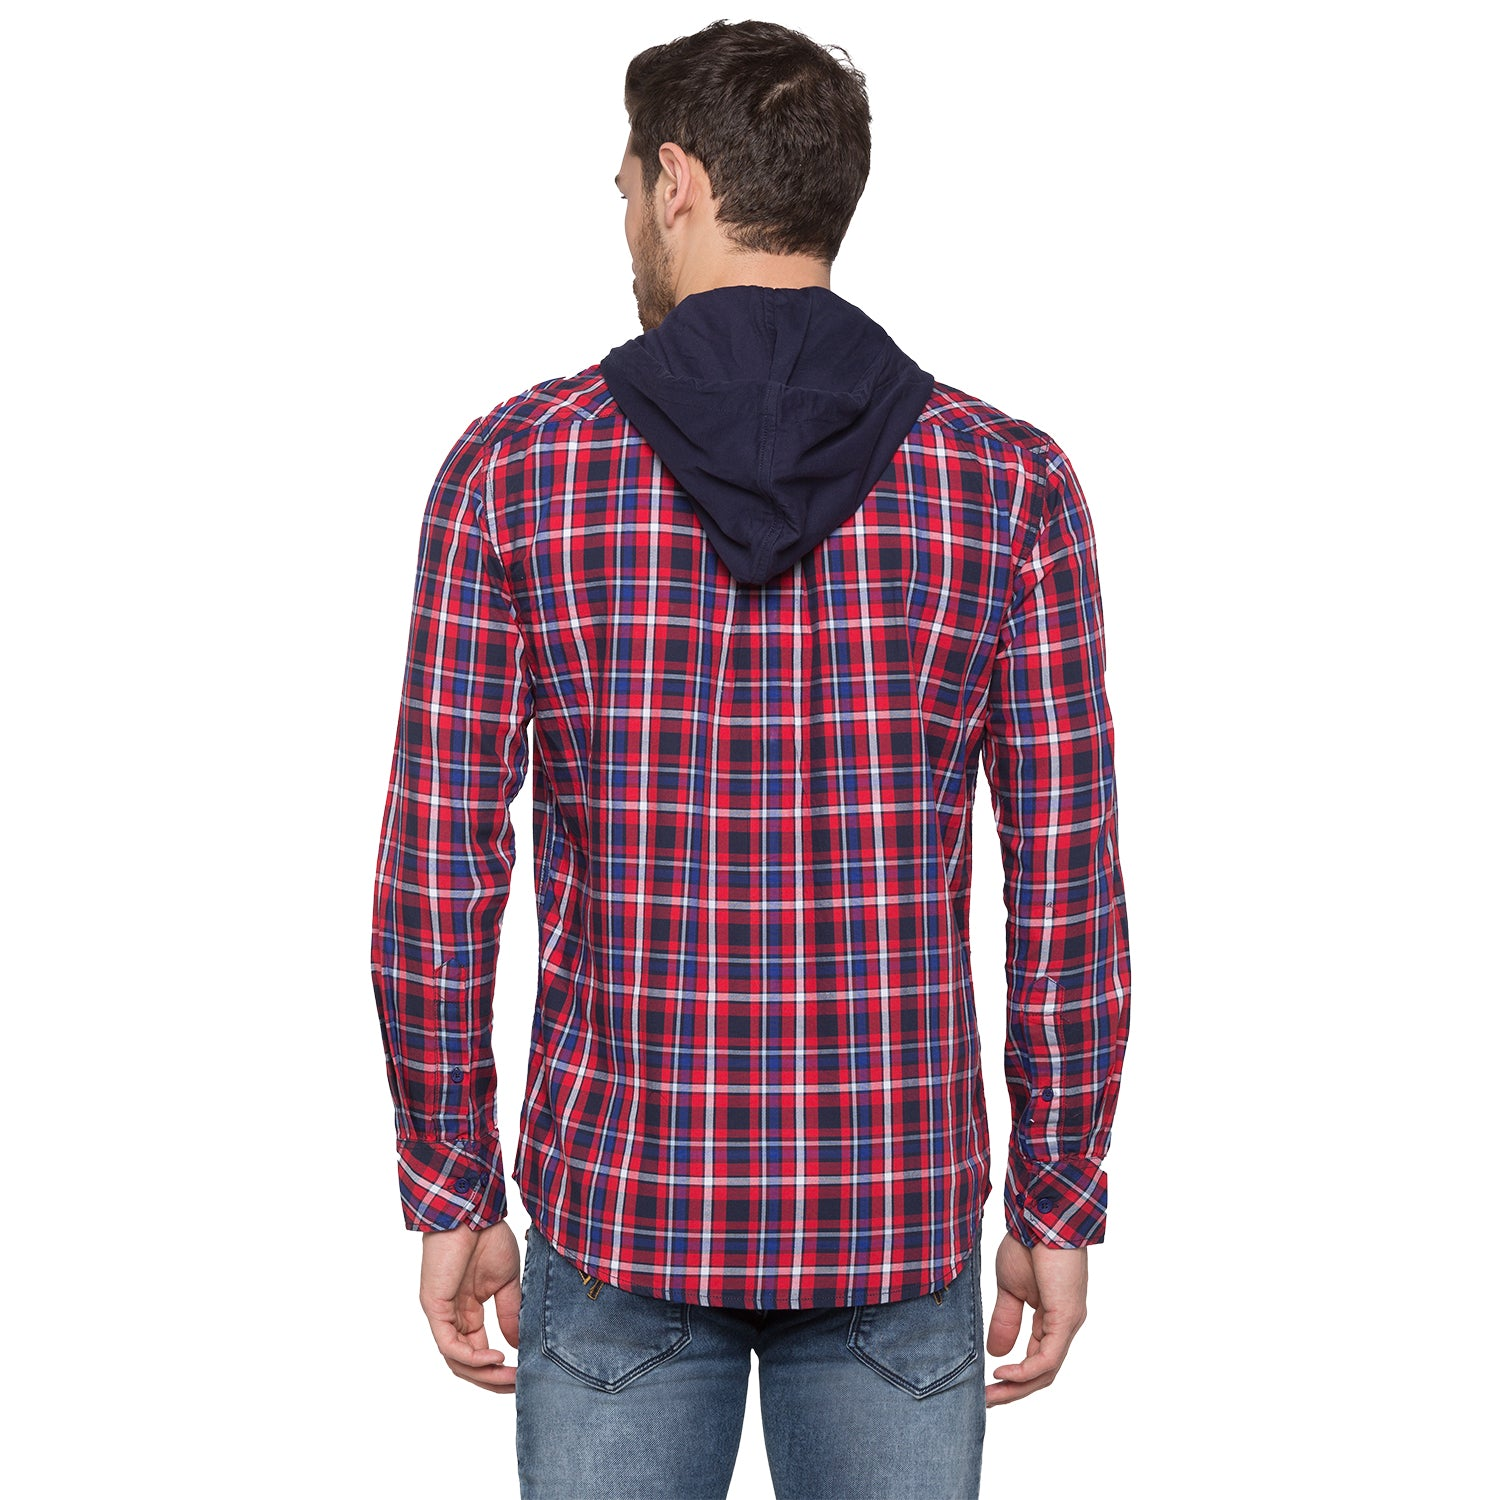 Globus Red & Navy Blue Checked Shirt-3